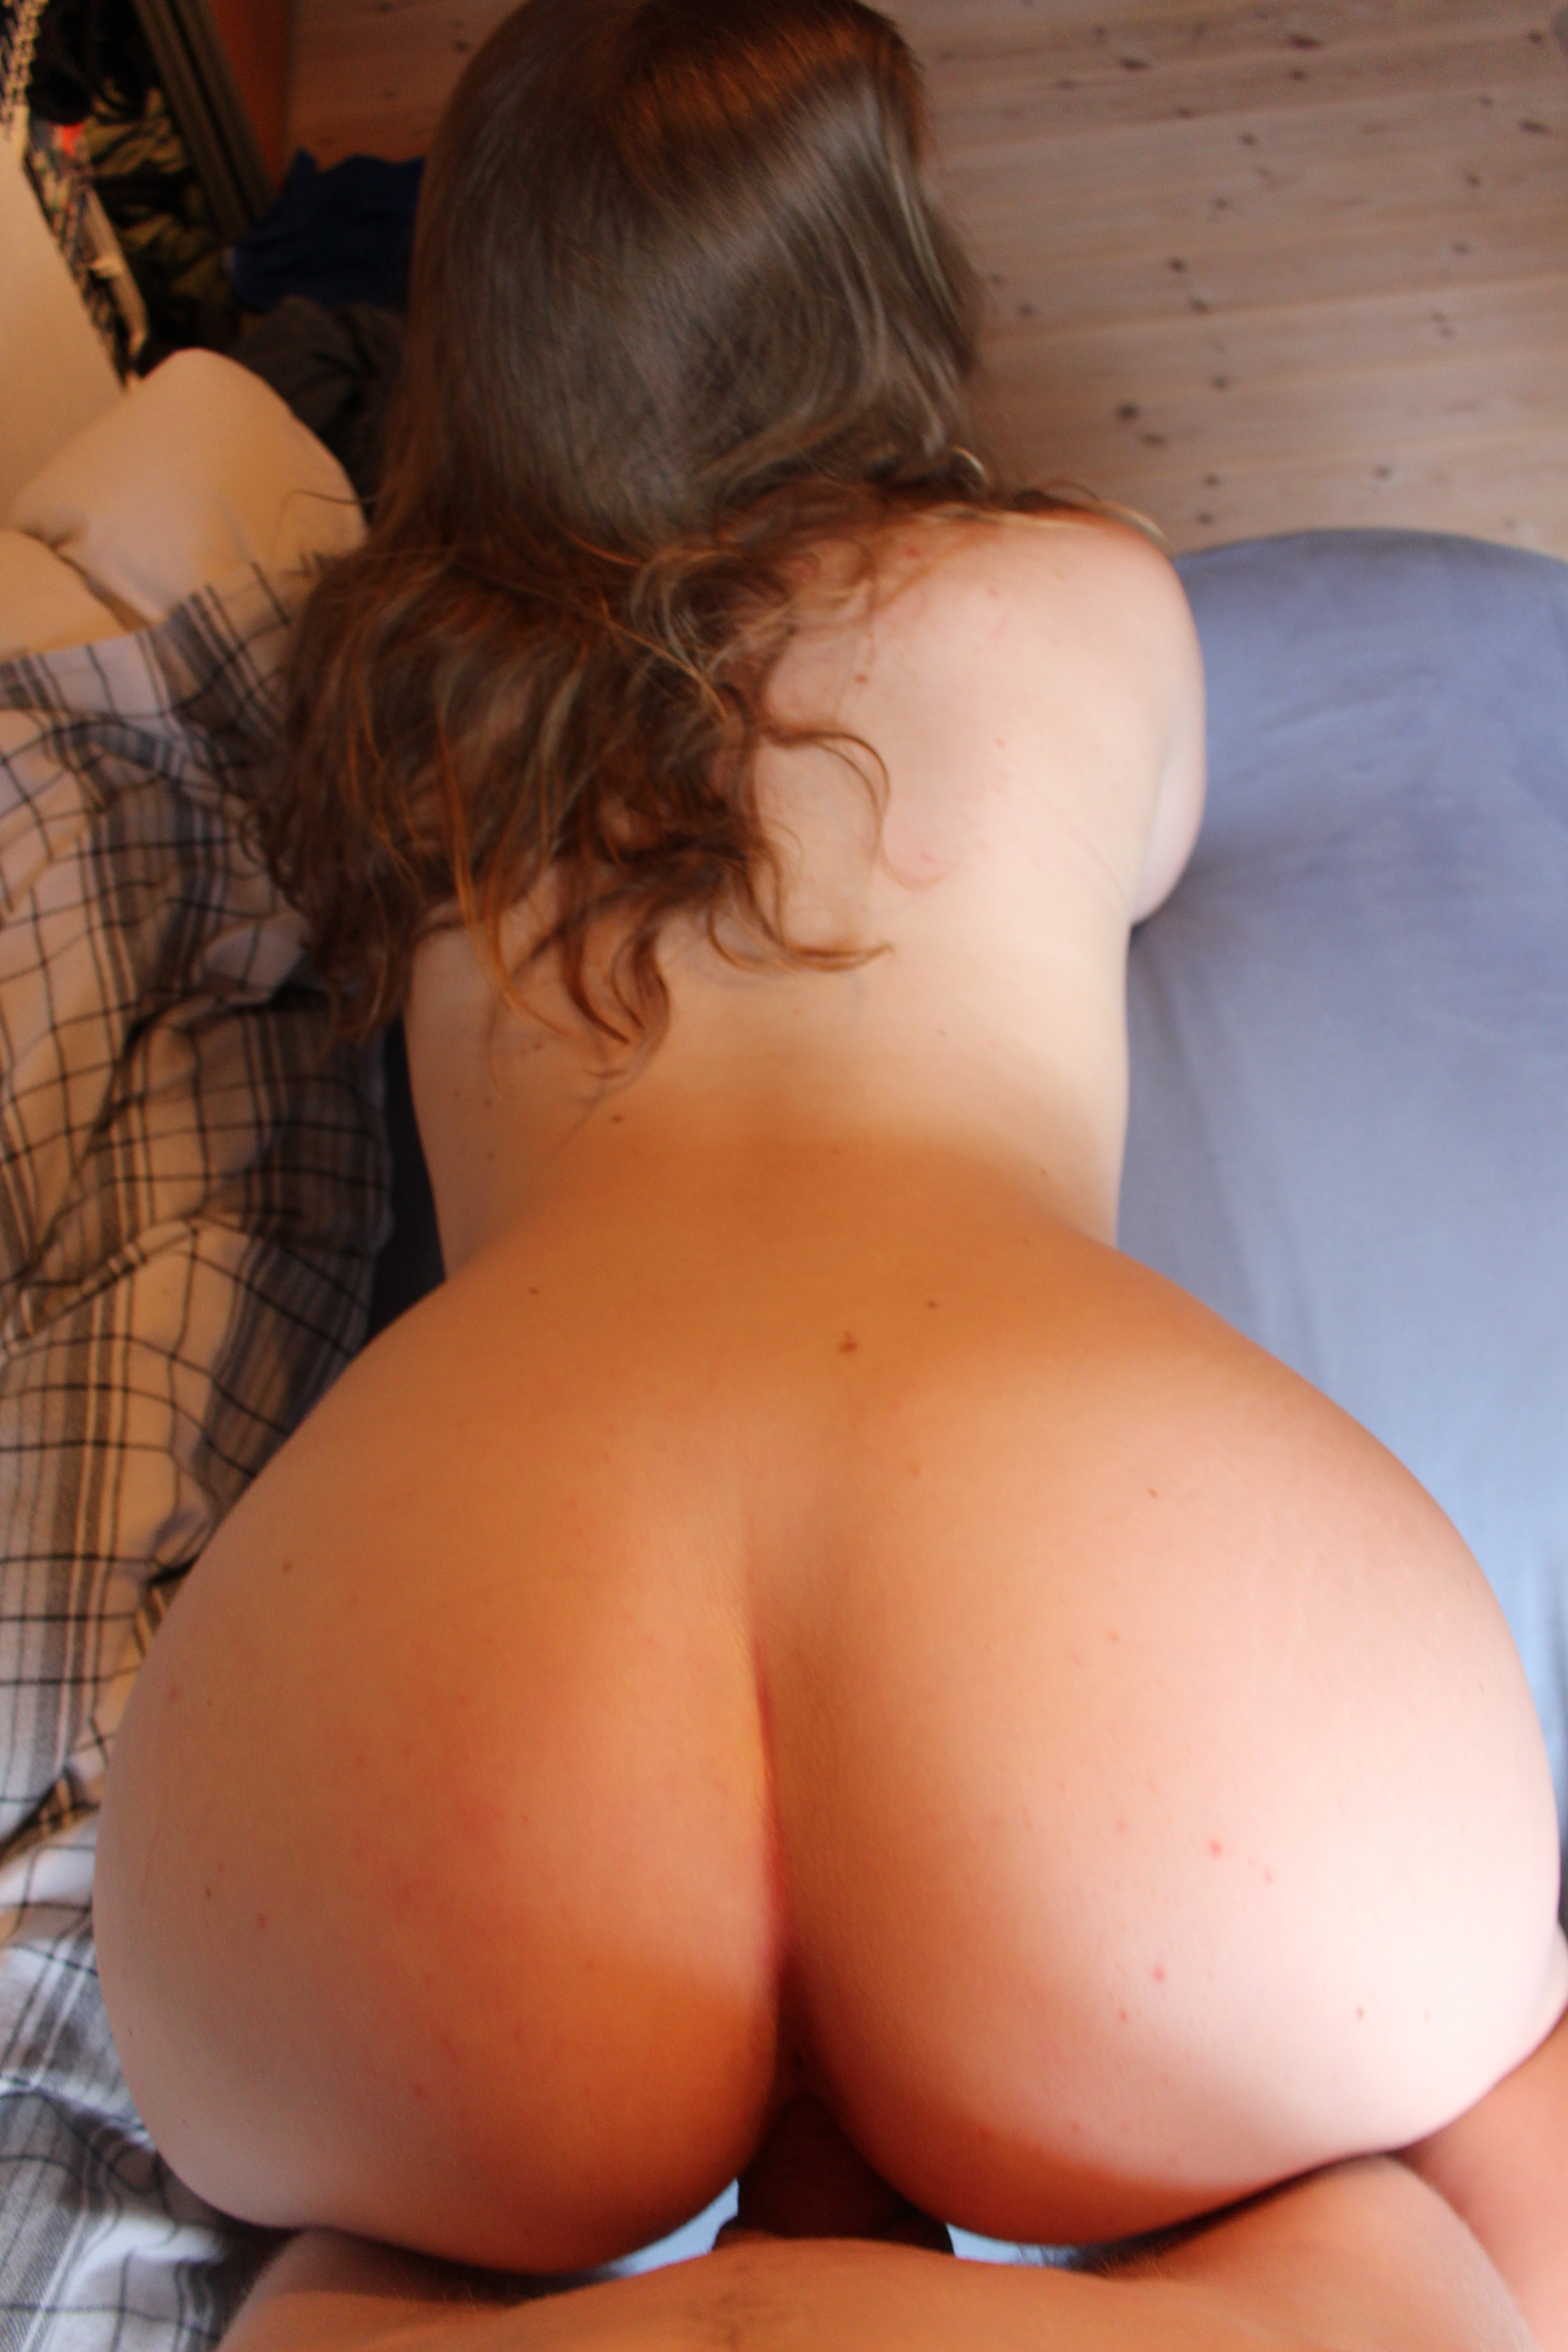 stripper with fake ass shaking it mobile porn